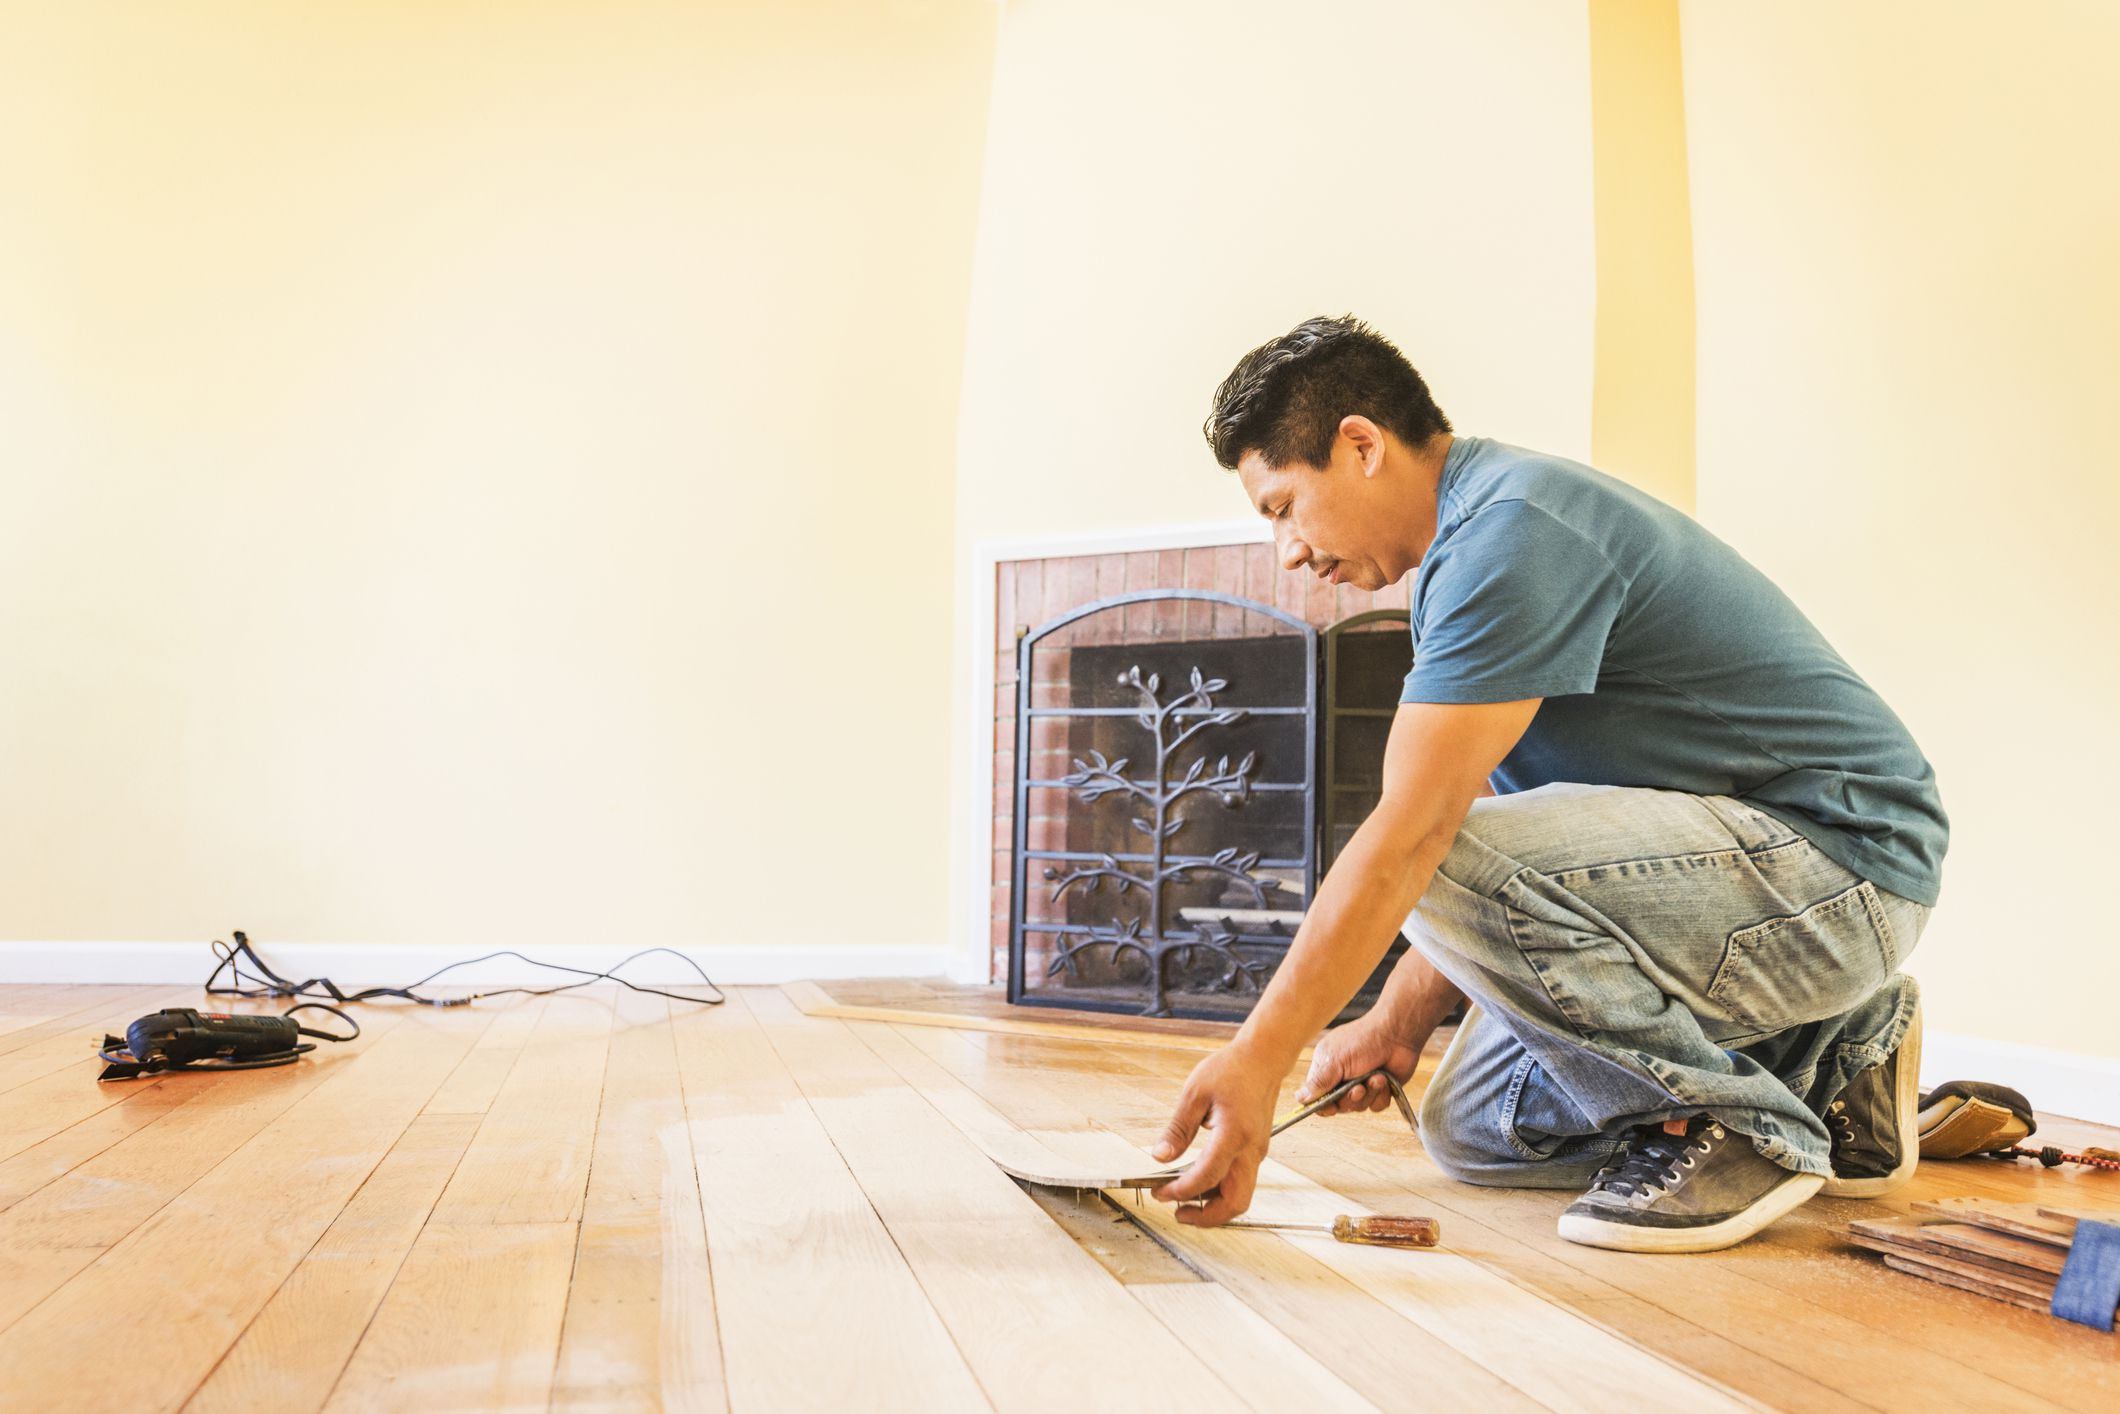 how to install engineered hardwood flooring in basement of hardwood installer how to hire and what to expect inside installing wood flooring 592016327 57af51a23df78cd39cfa08d9